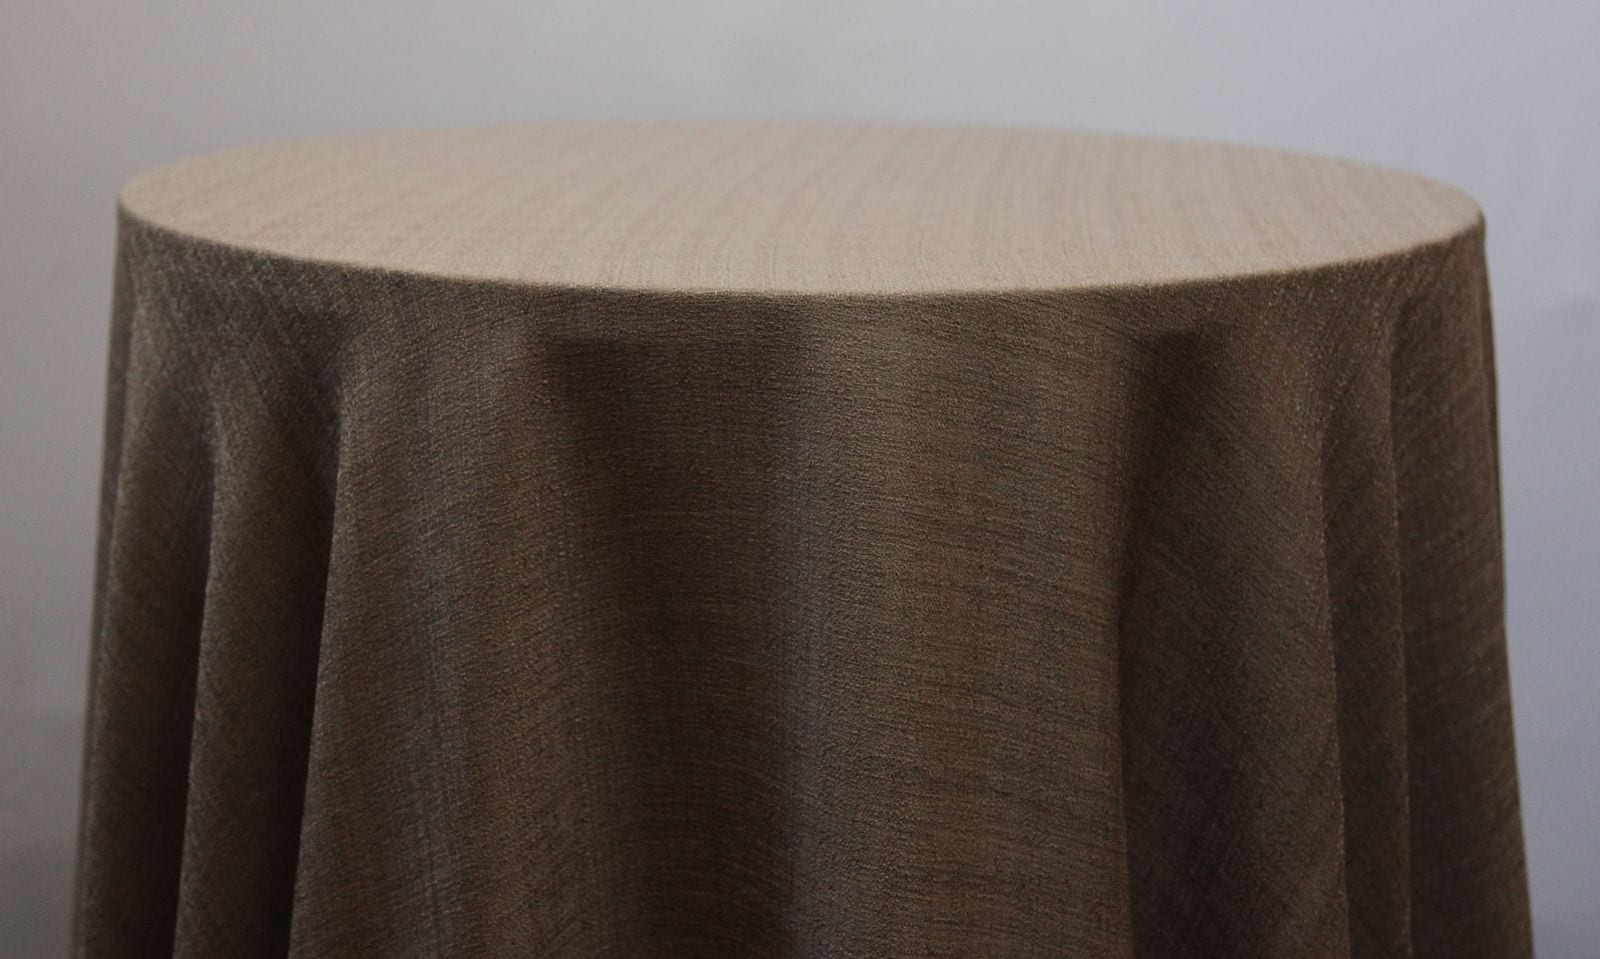 Ricky Linen Tablecloth - Event Hire - Chair Covers and Candelabra